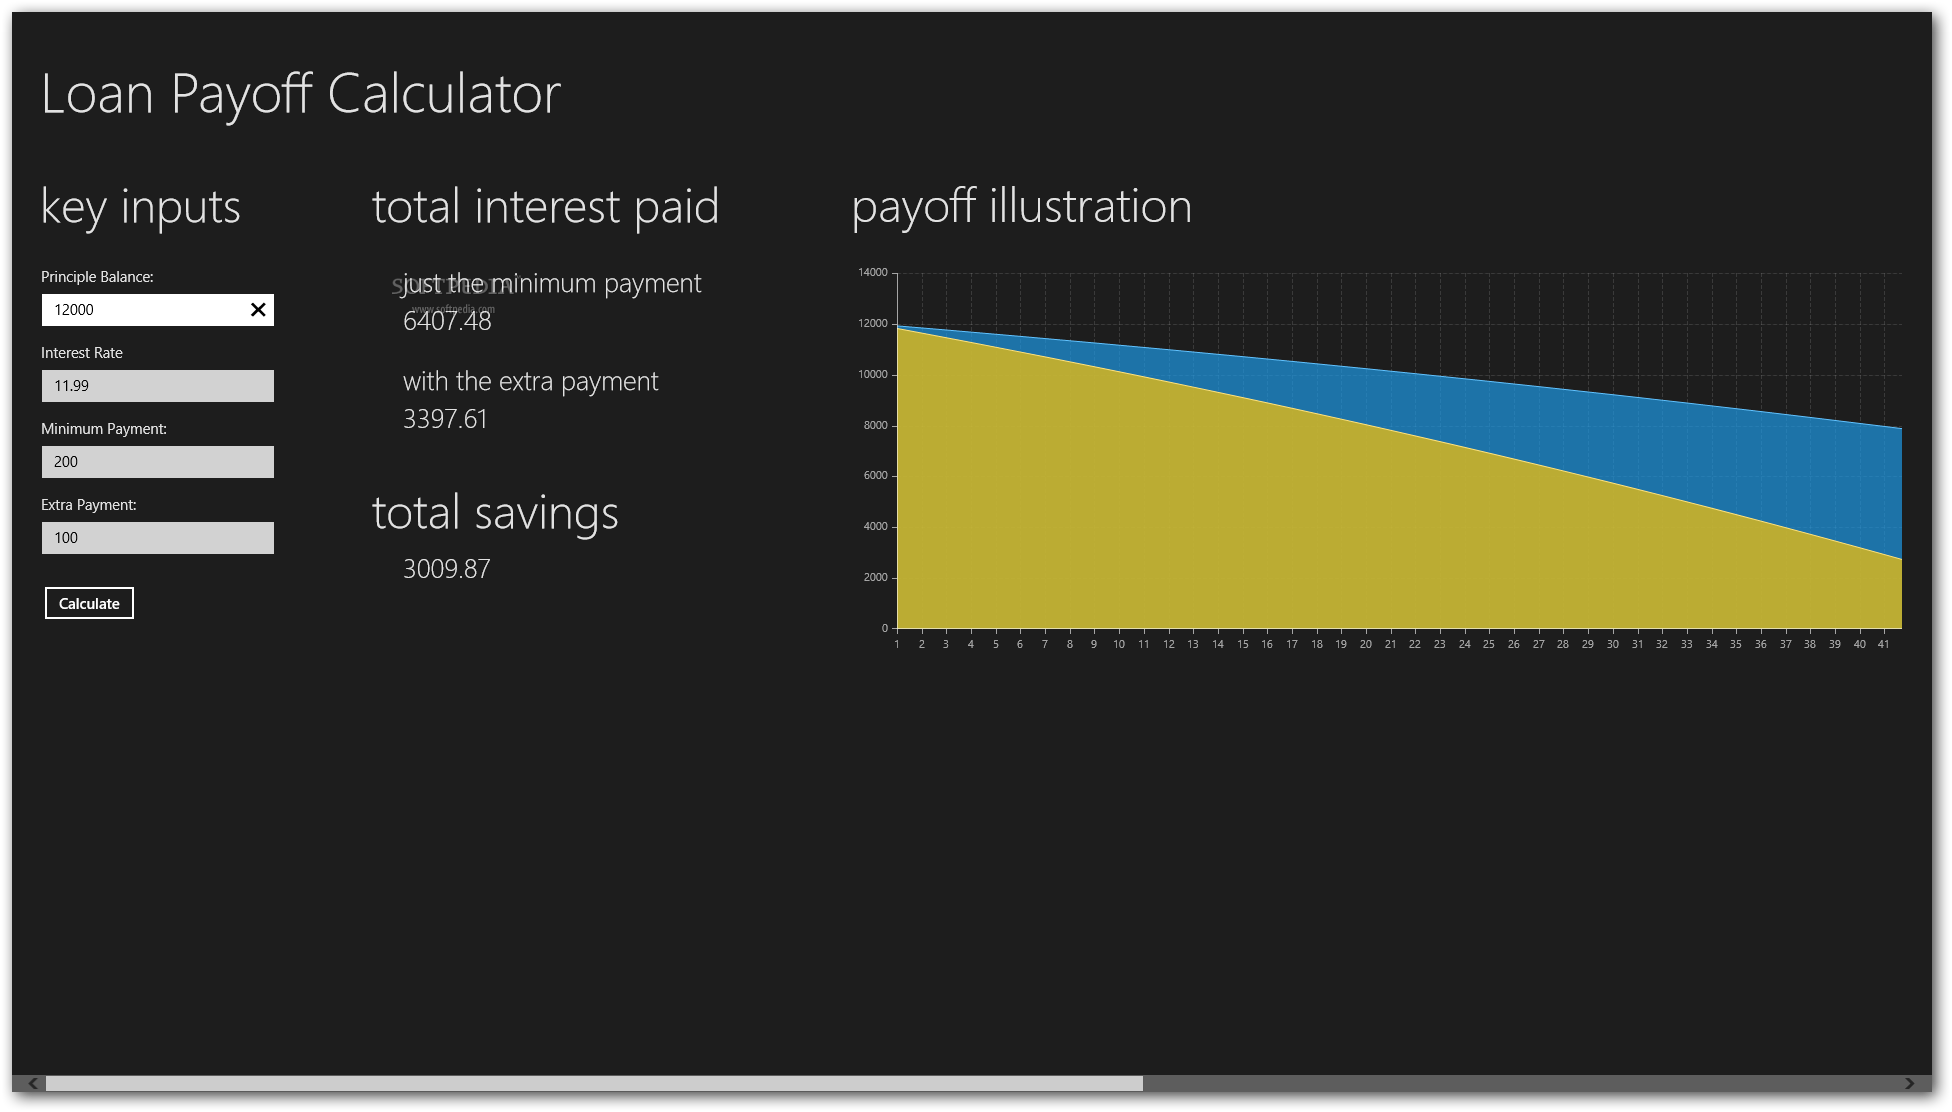 loan payoff calculator for windows 8 free download softpedia